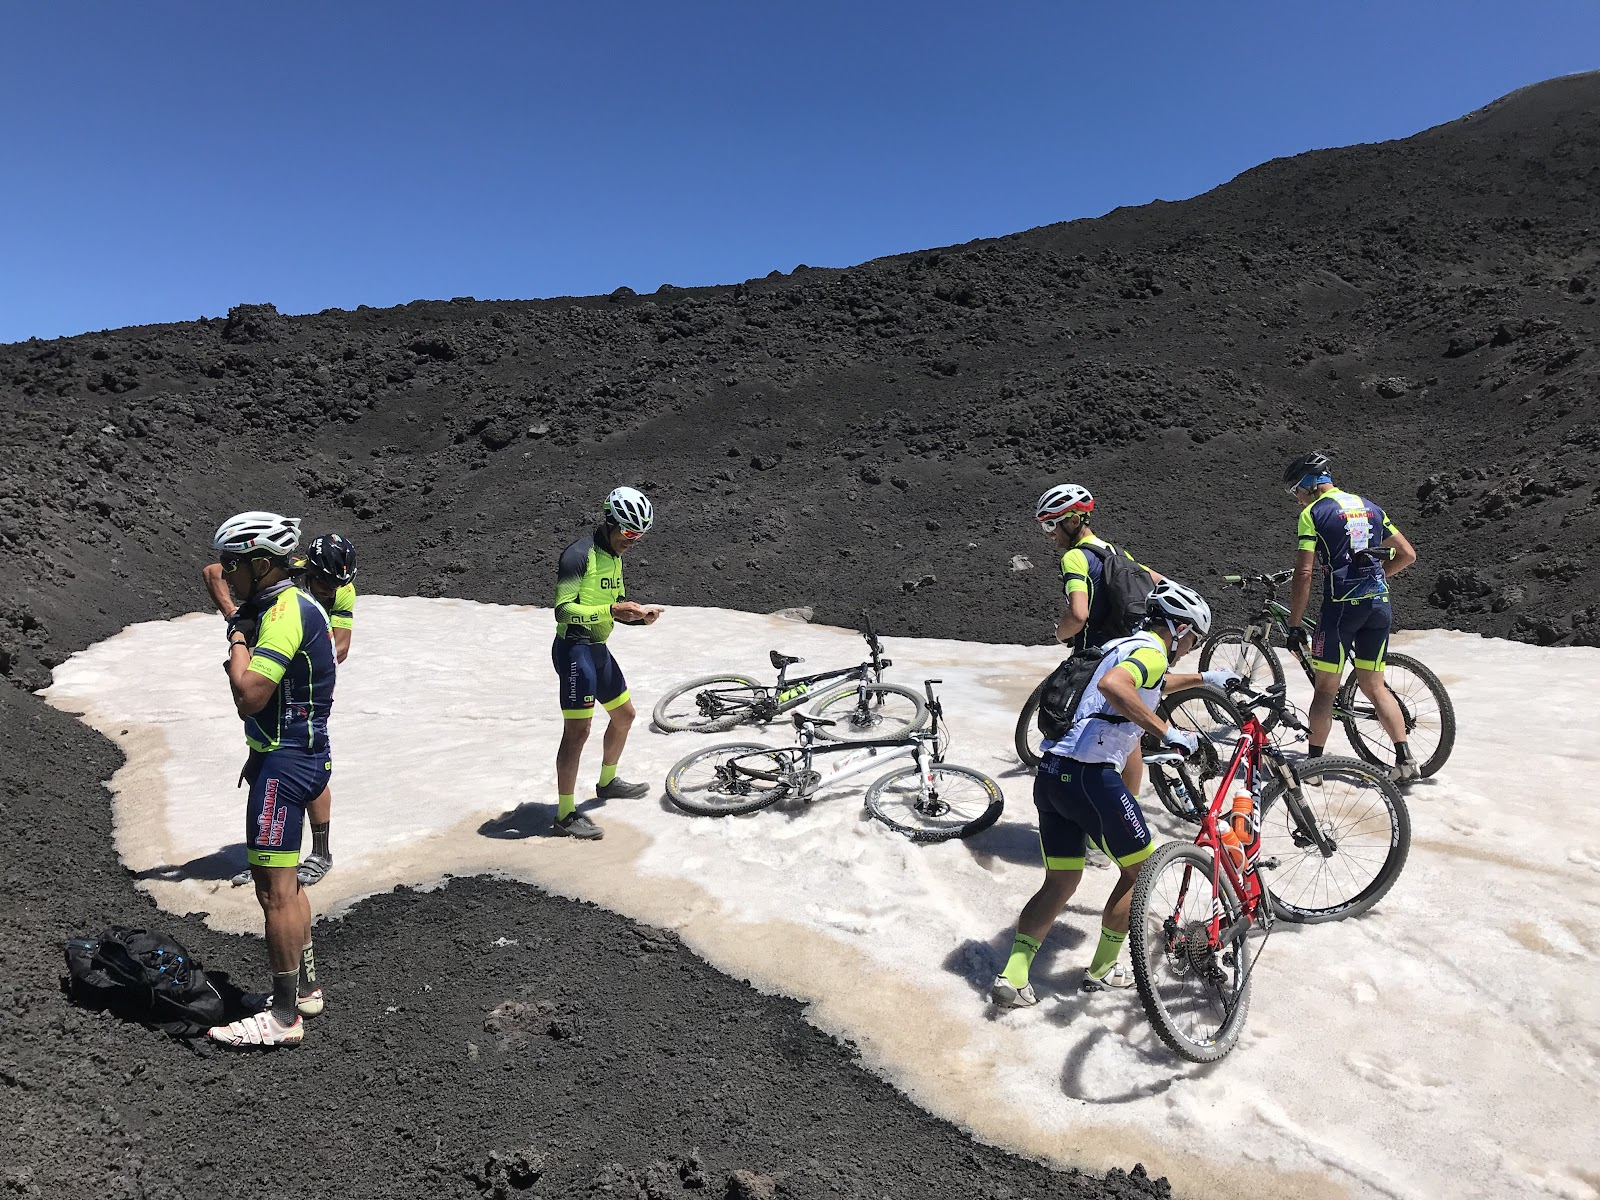 Cyclists in snow with bikes at top of Mount Etna, Sicily, Italy